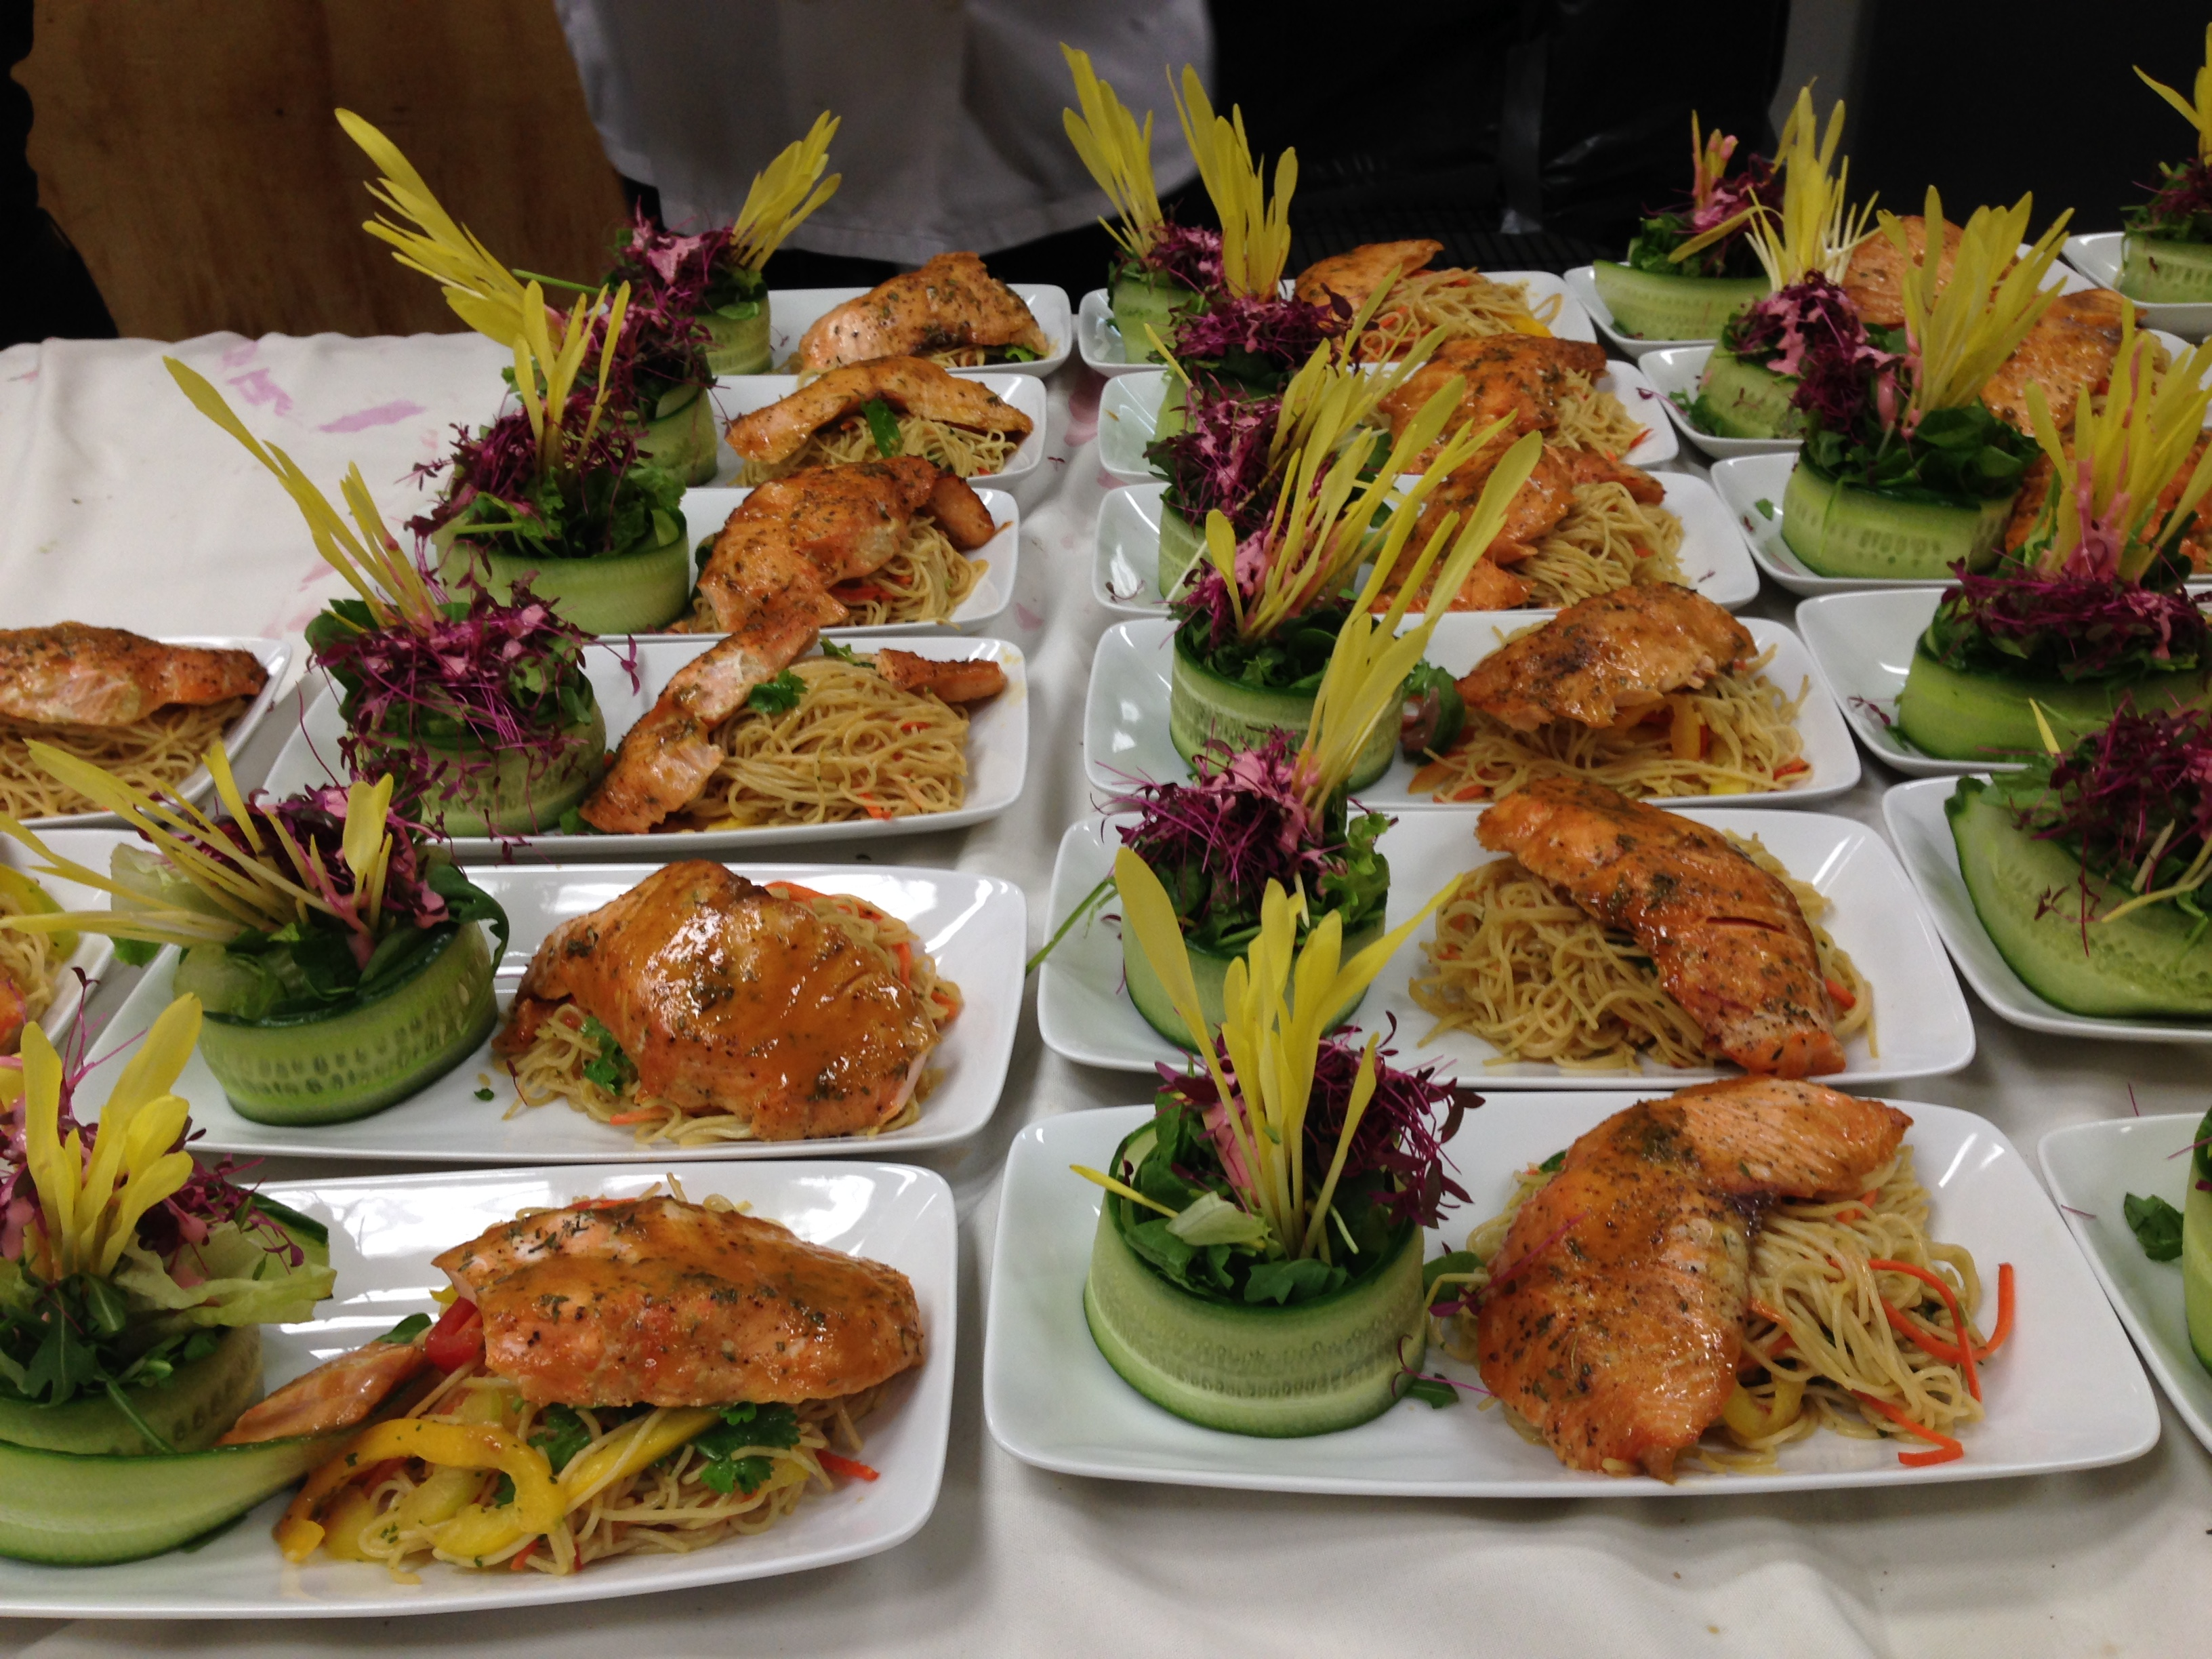 Kosher Catering Toronto Introduces New Food Stations